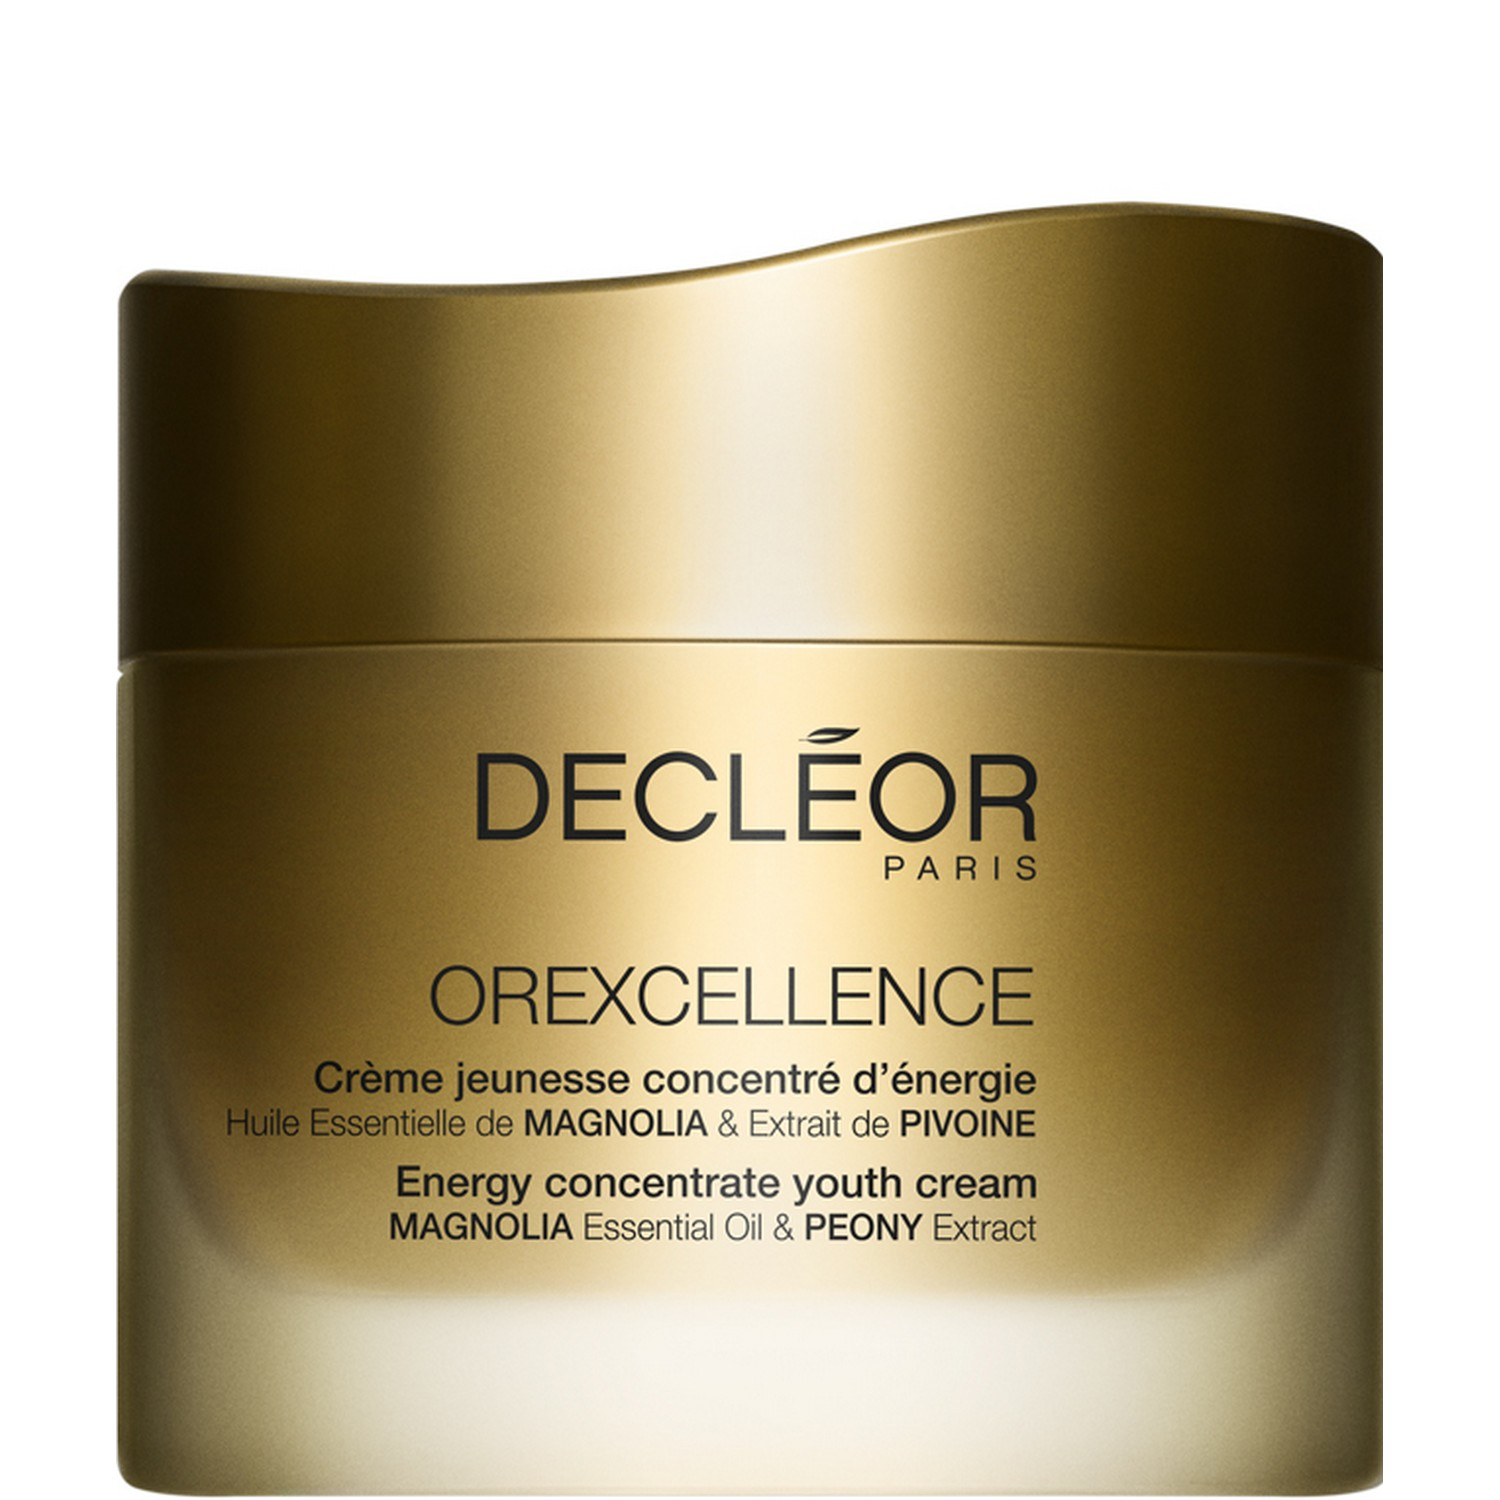 Decleor OREXCELLENCE Energy concentrate youth cream (1.7 oz / 50 ml)